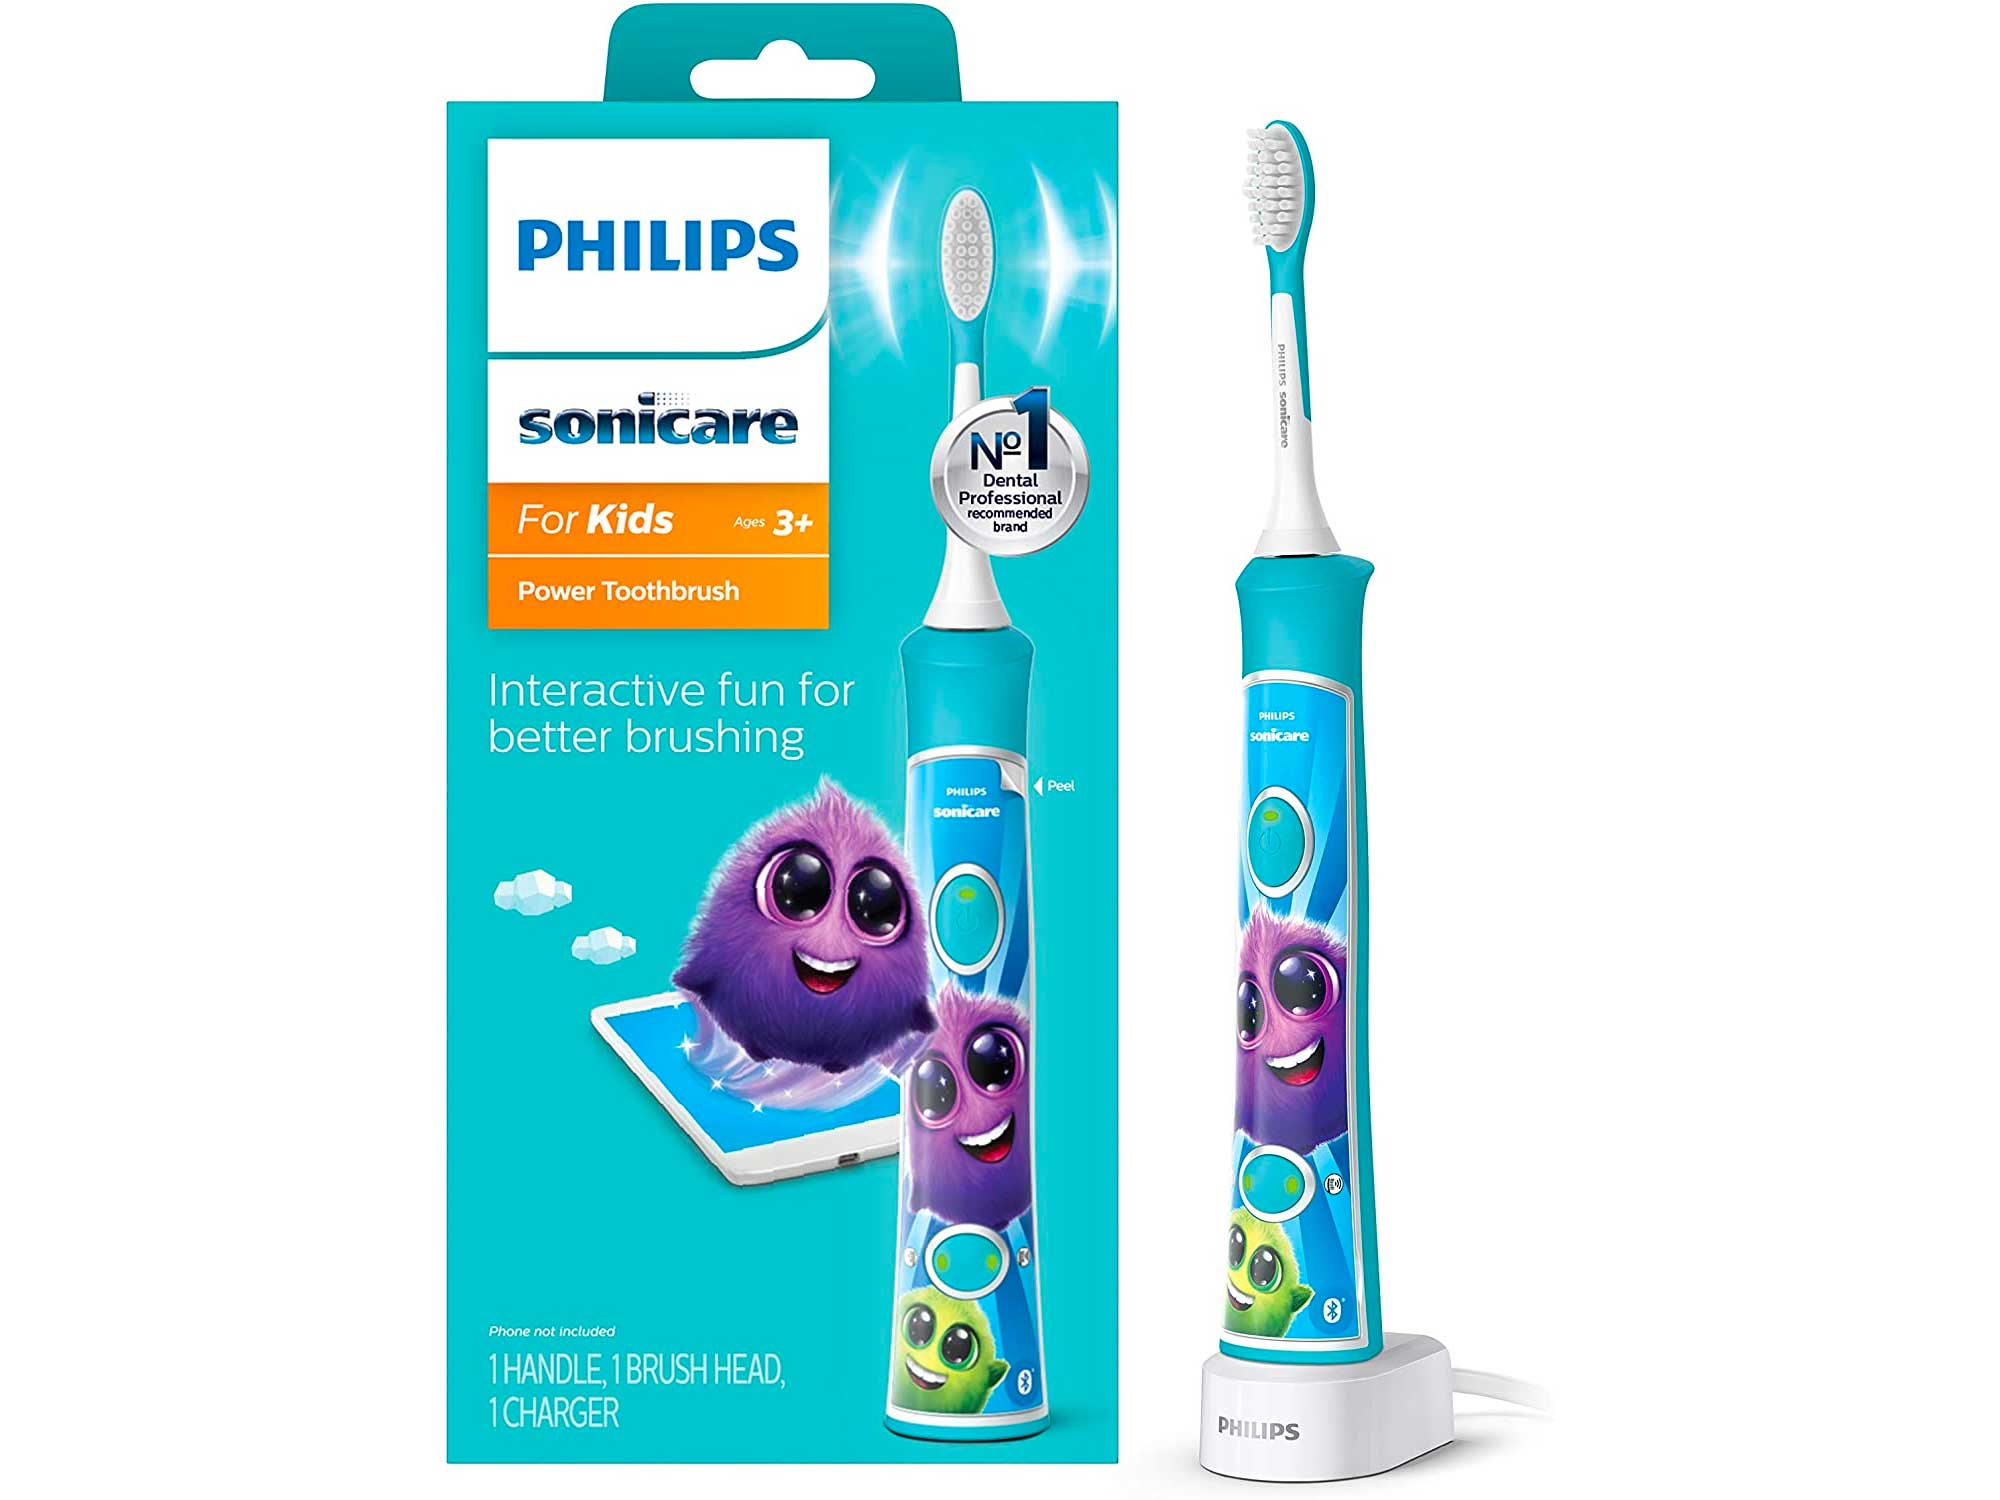 Philips Sonicare for Kids Rechargeable Electric Toothbrush, Blue